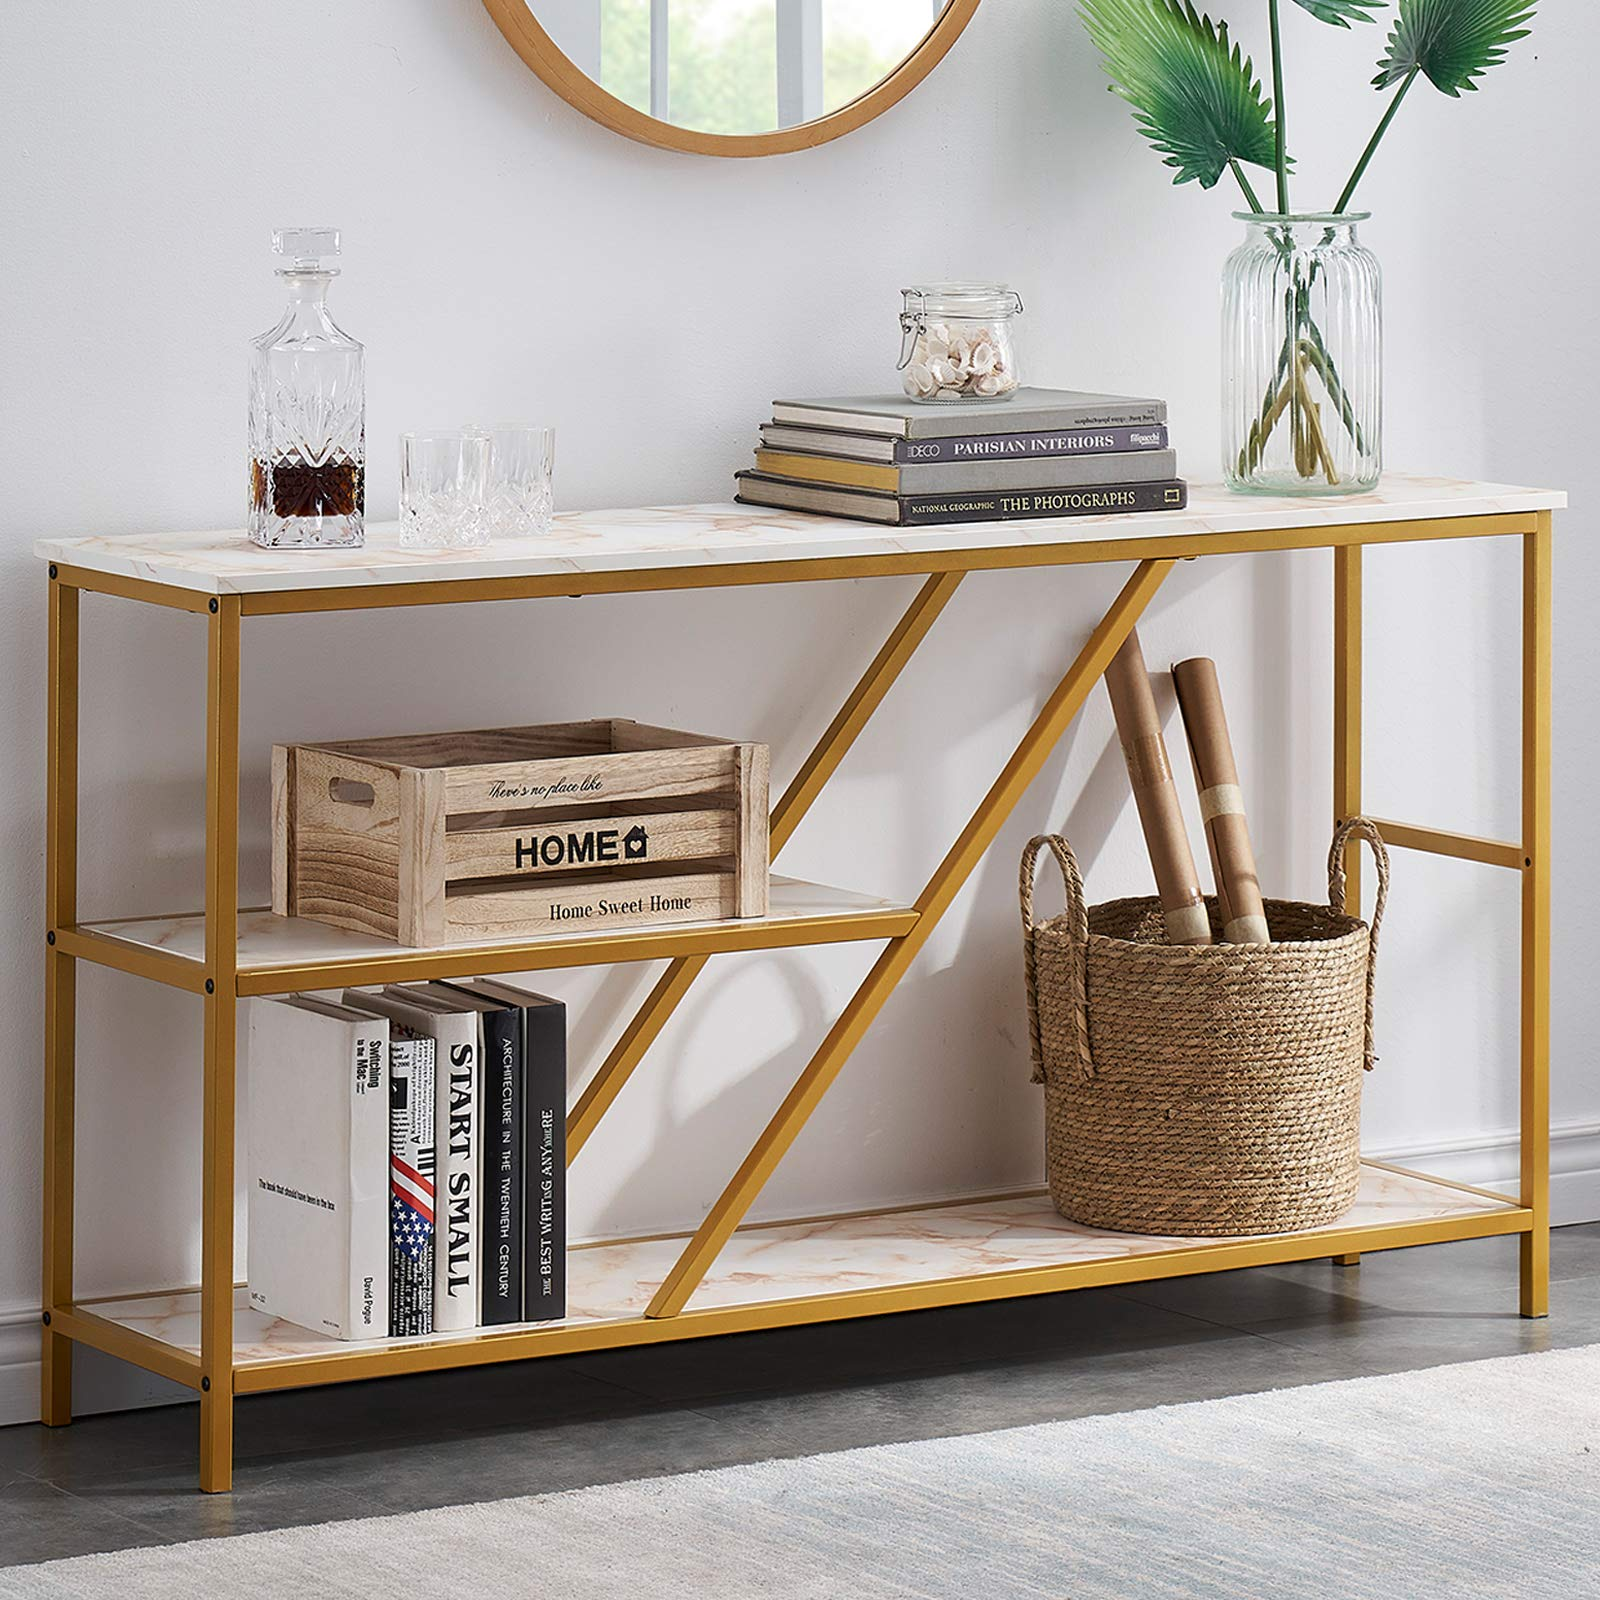 Console Tables for Entryway Modern Sofa Table with Shelves, 3 Tier Hallway Table Entry Table with Storage, Faux Marble/Gold 55 Inch